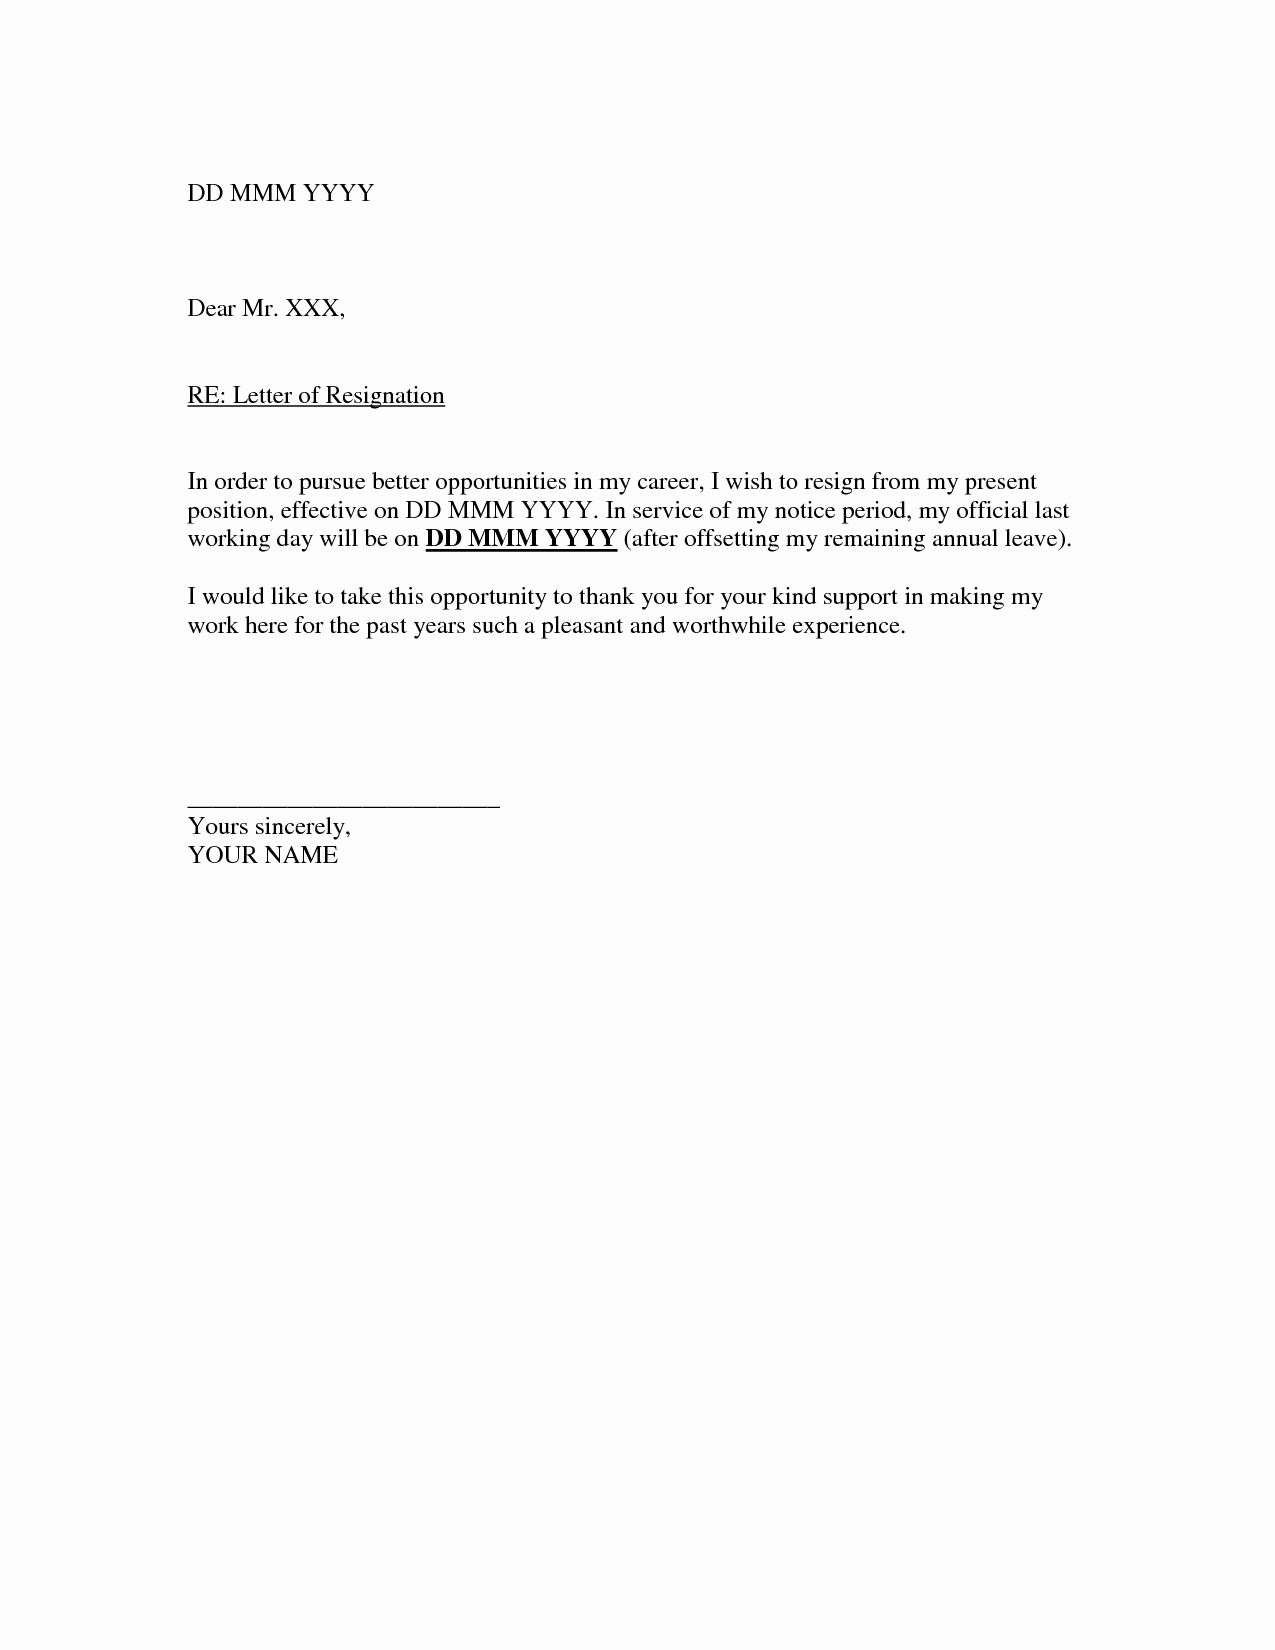 Letter Of Resignation Email Template Elegant Resignation Letter Template